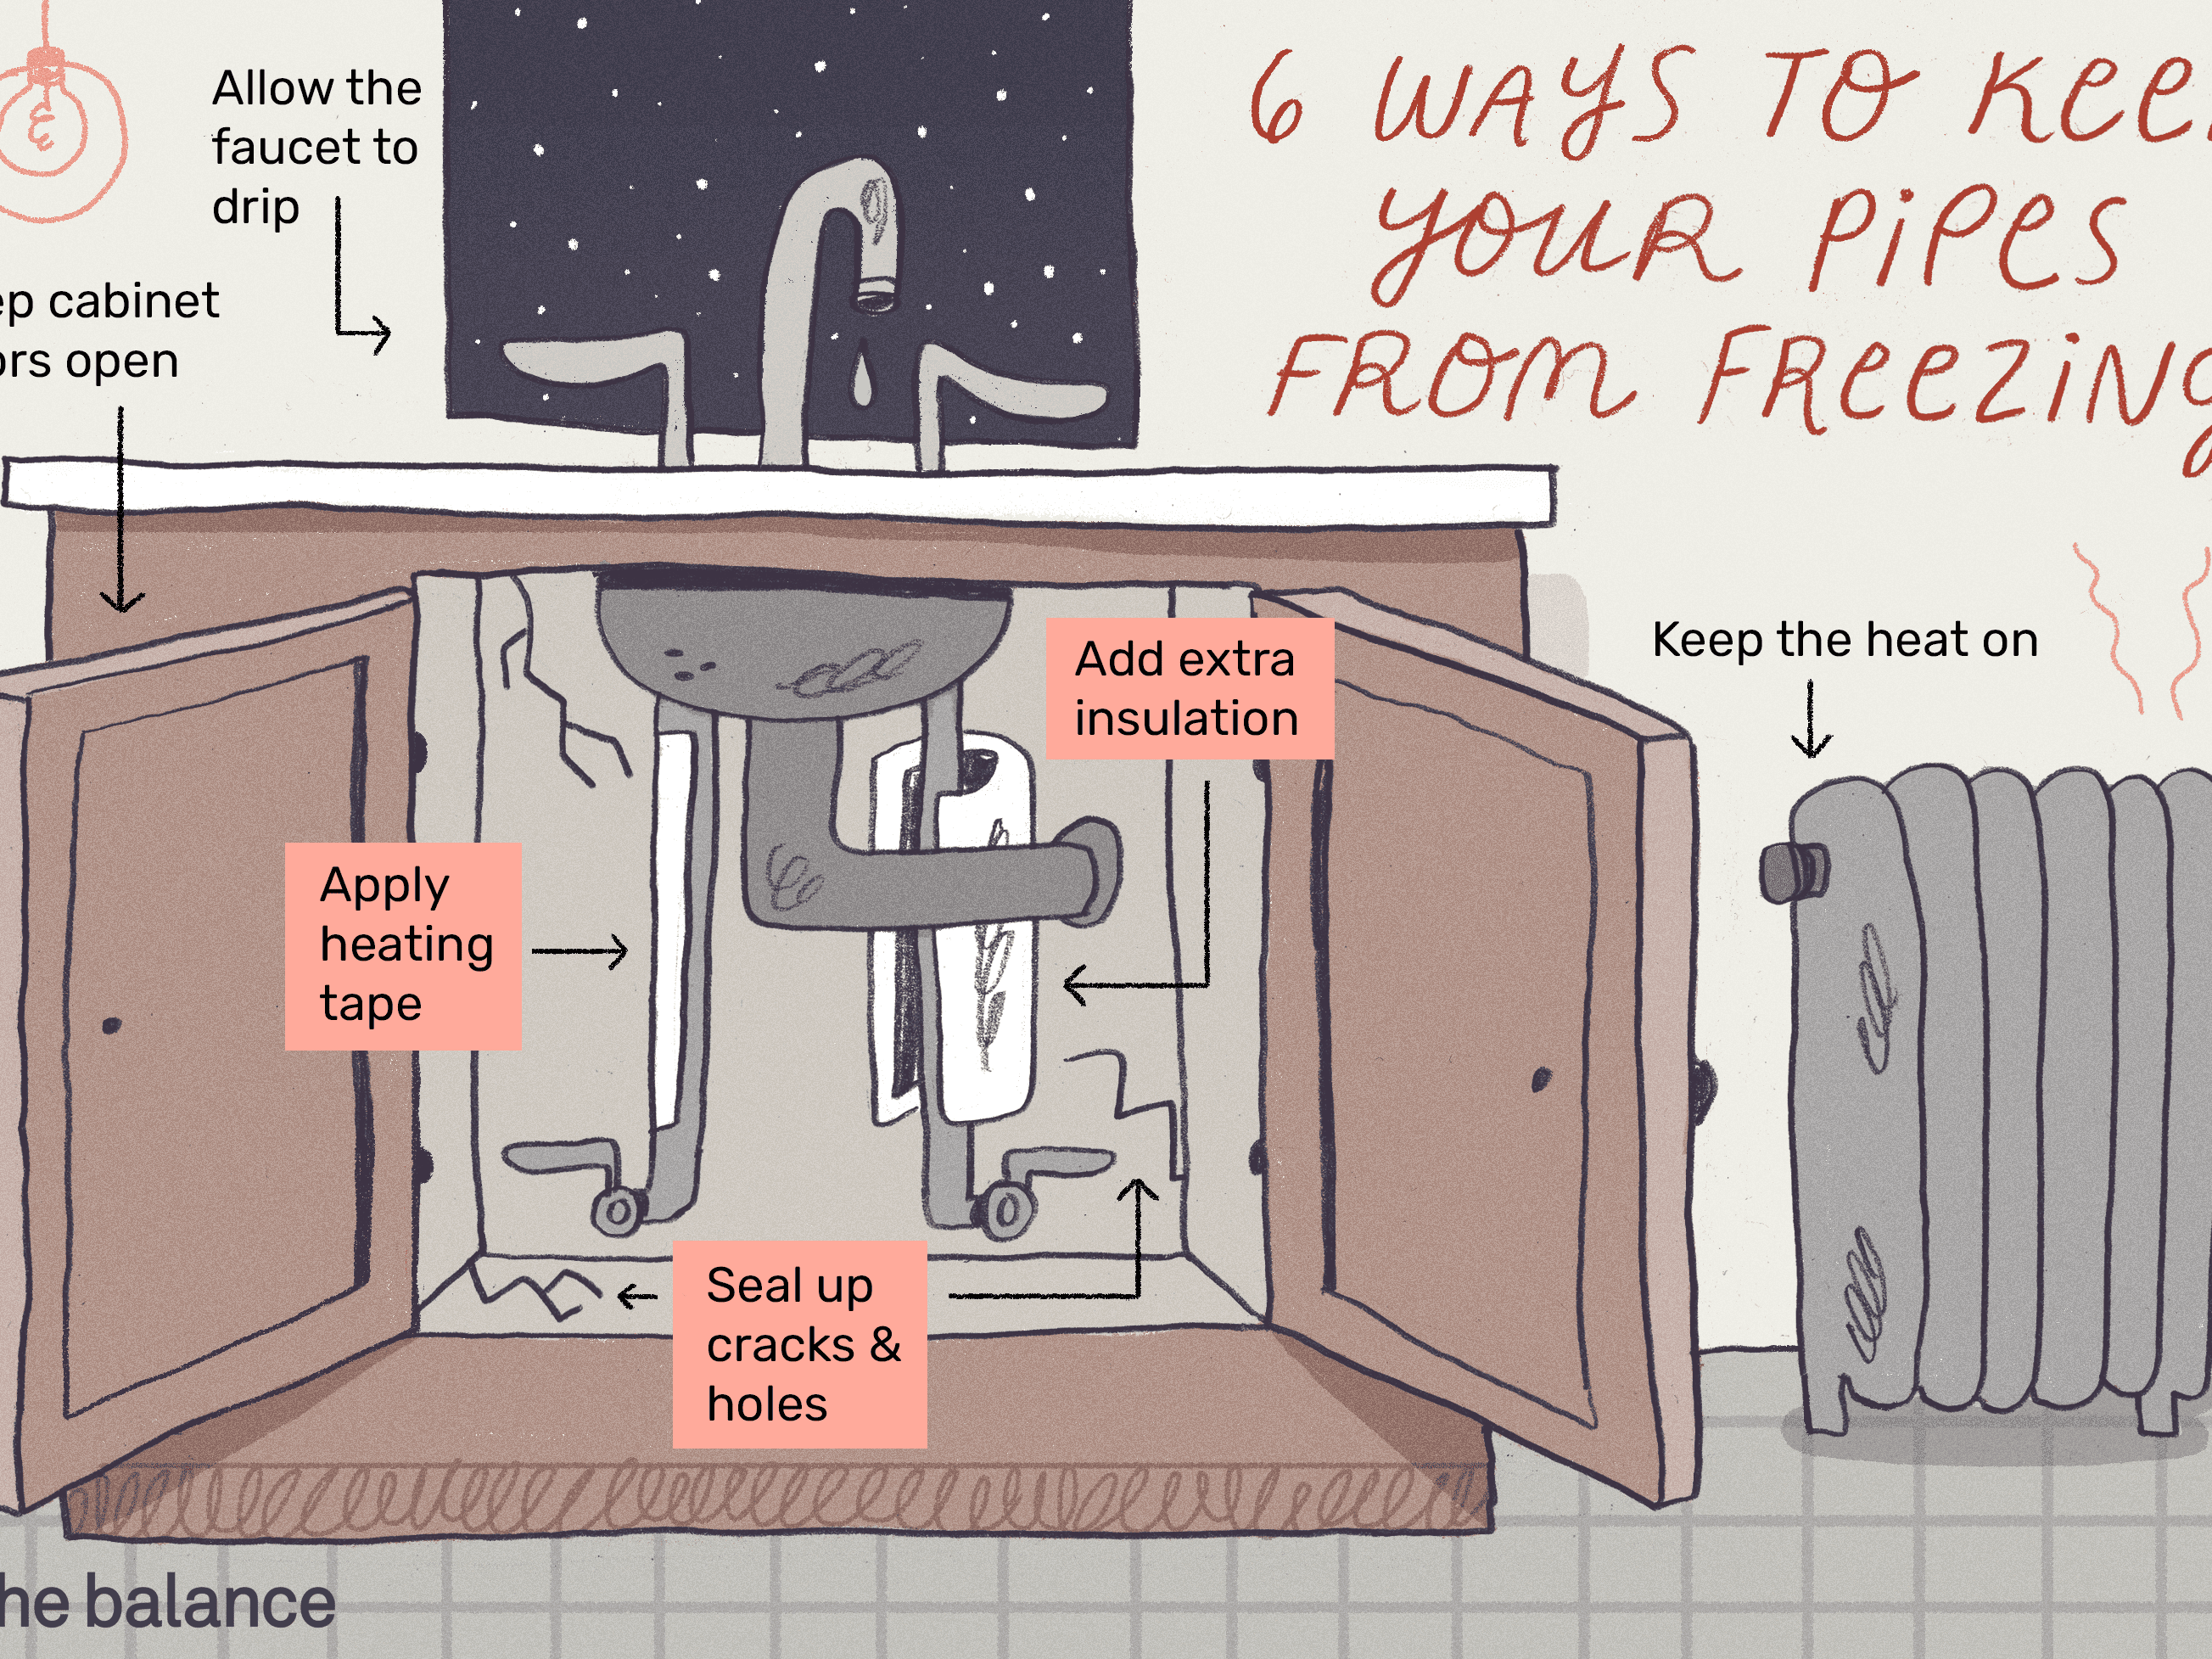 6 Great Tips To Keep Pipes From Freezing